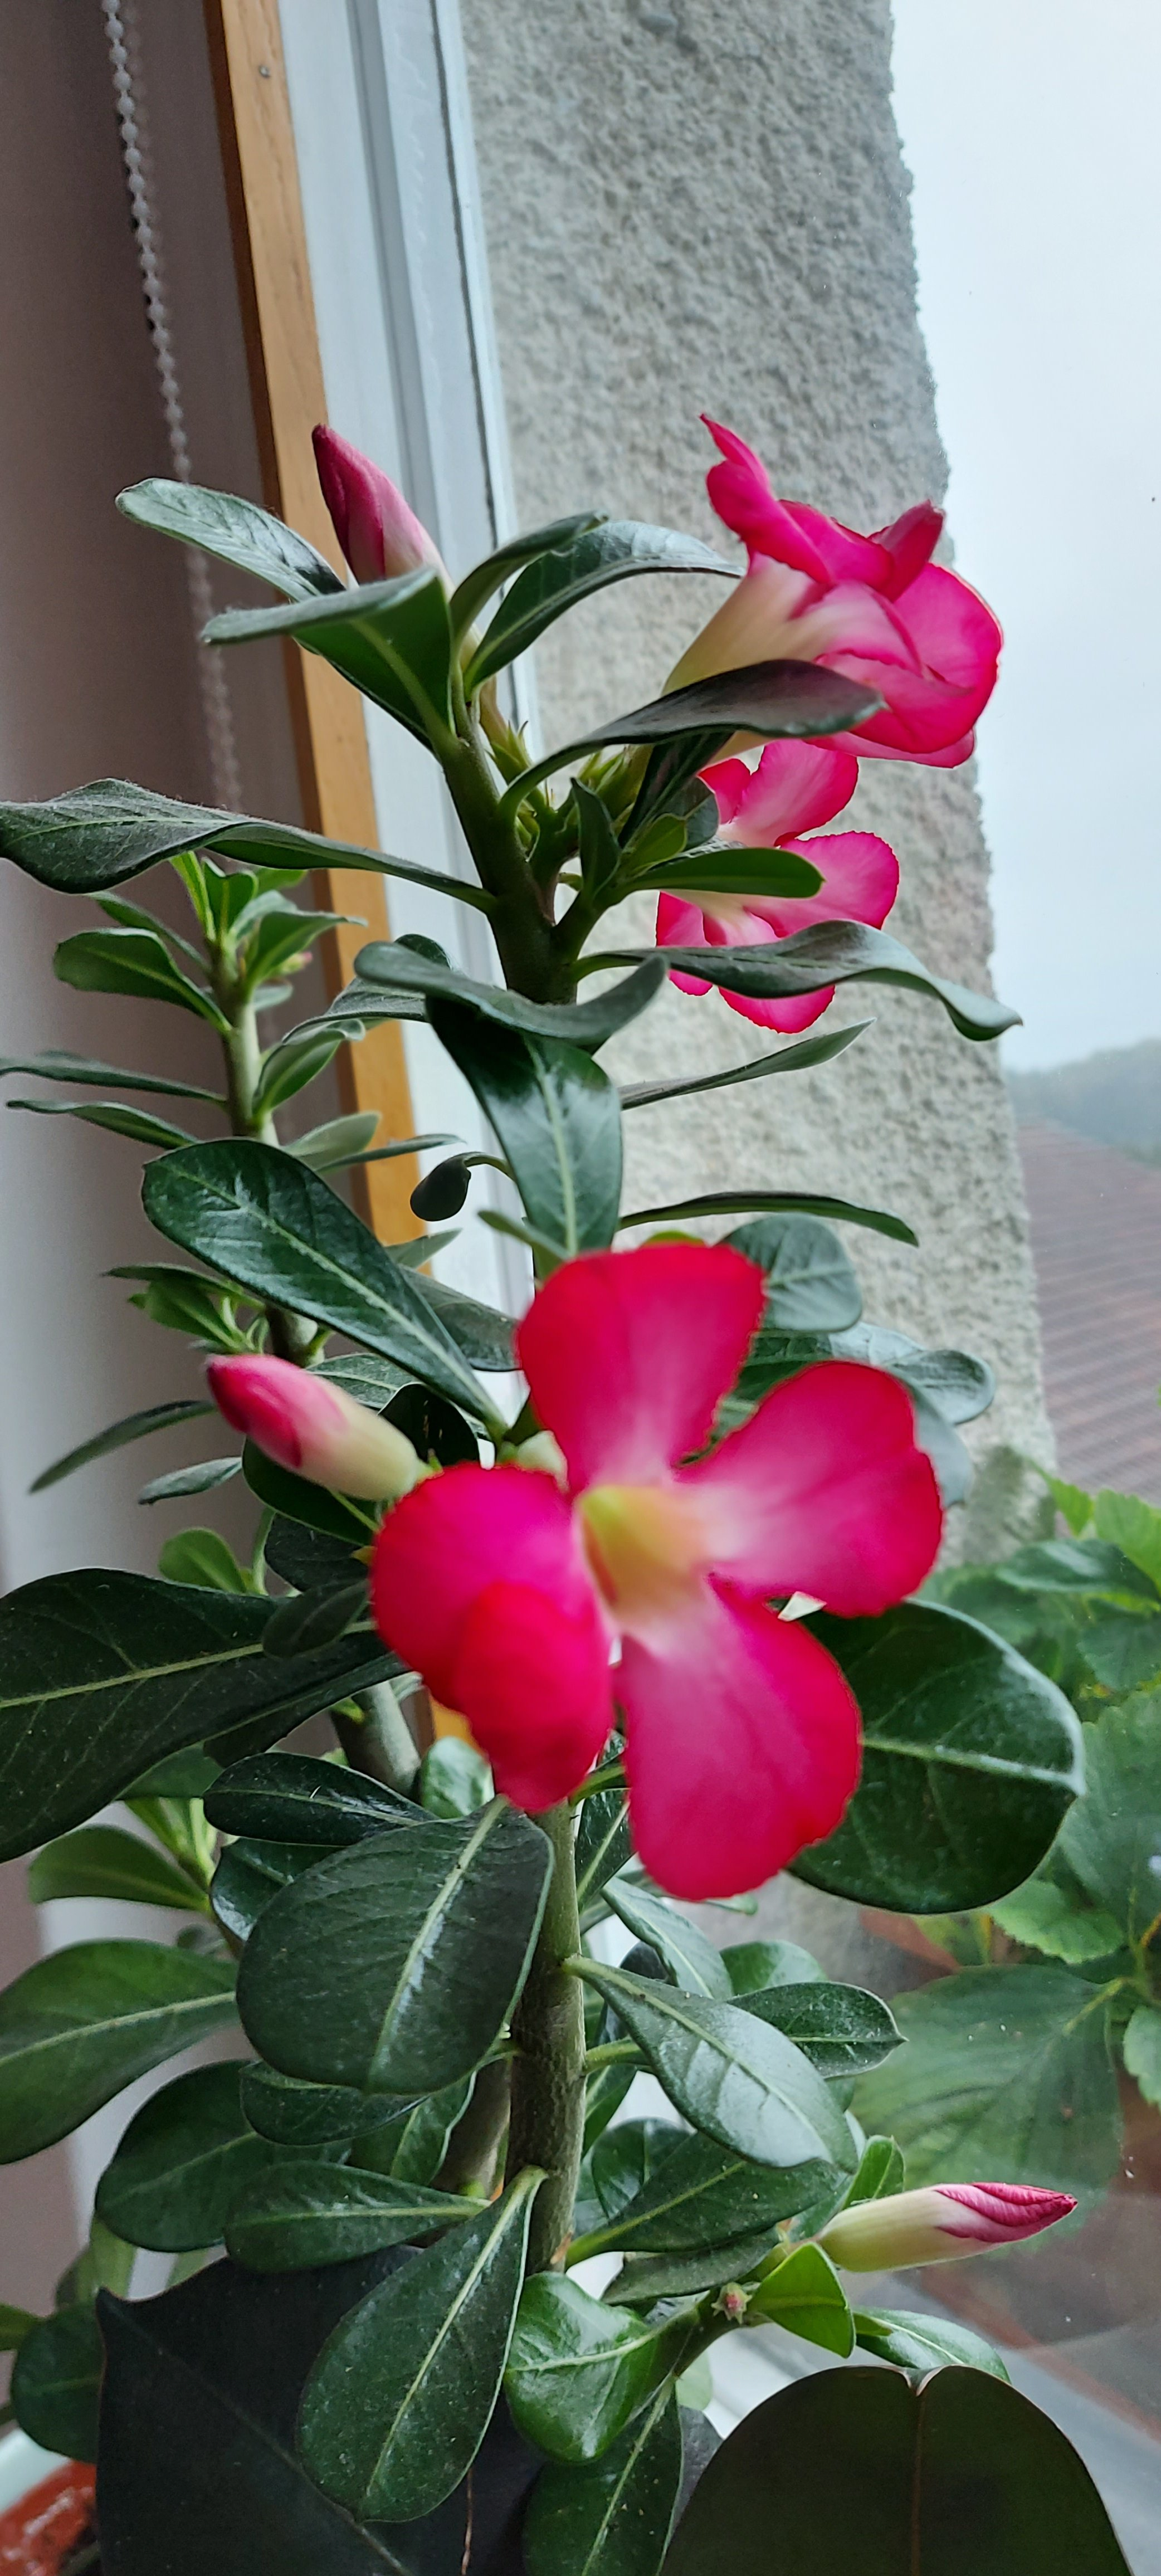 Desert rose pink flowers on plant on the window photography Tamara Jare